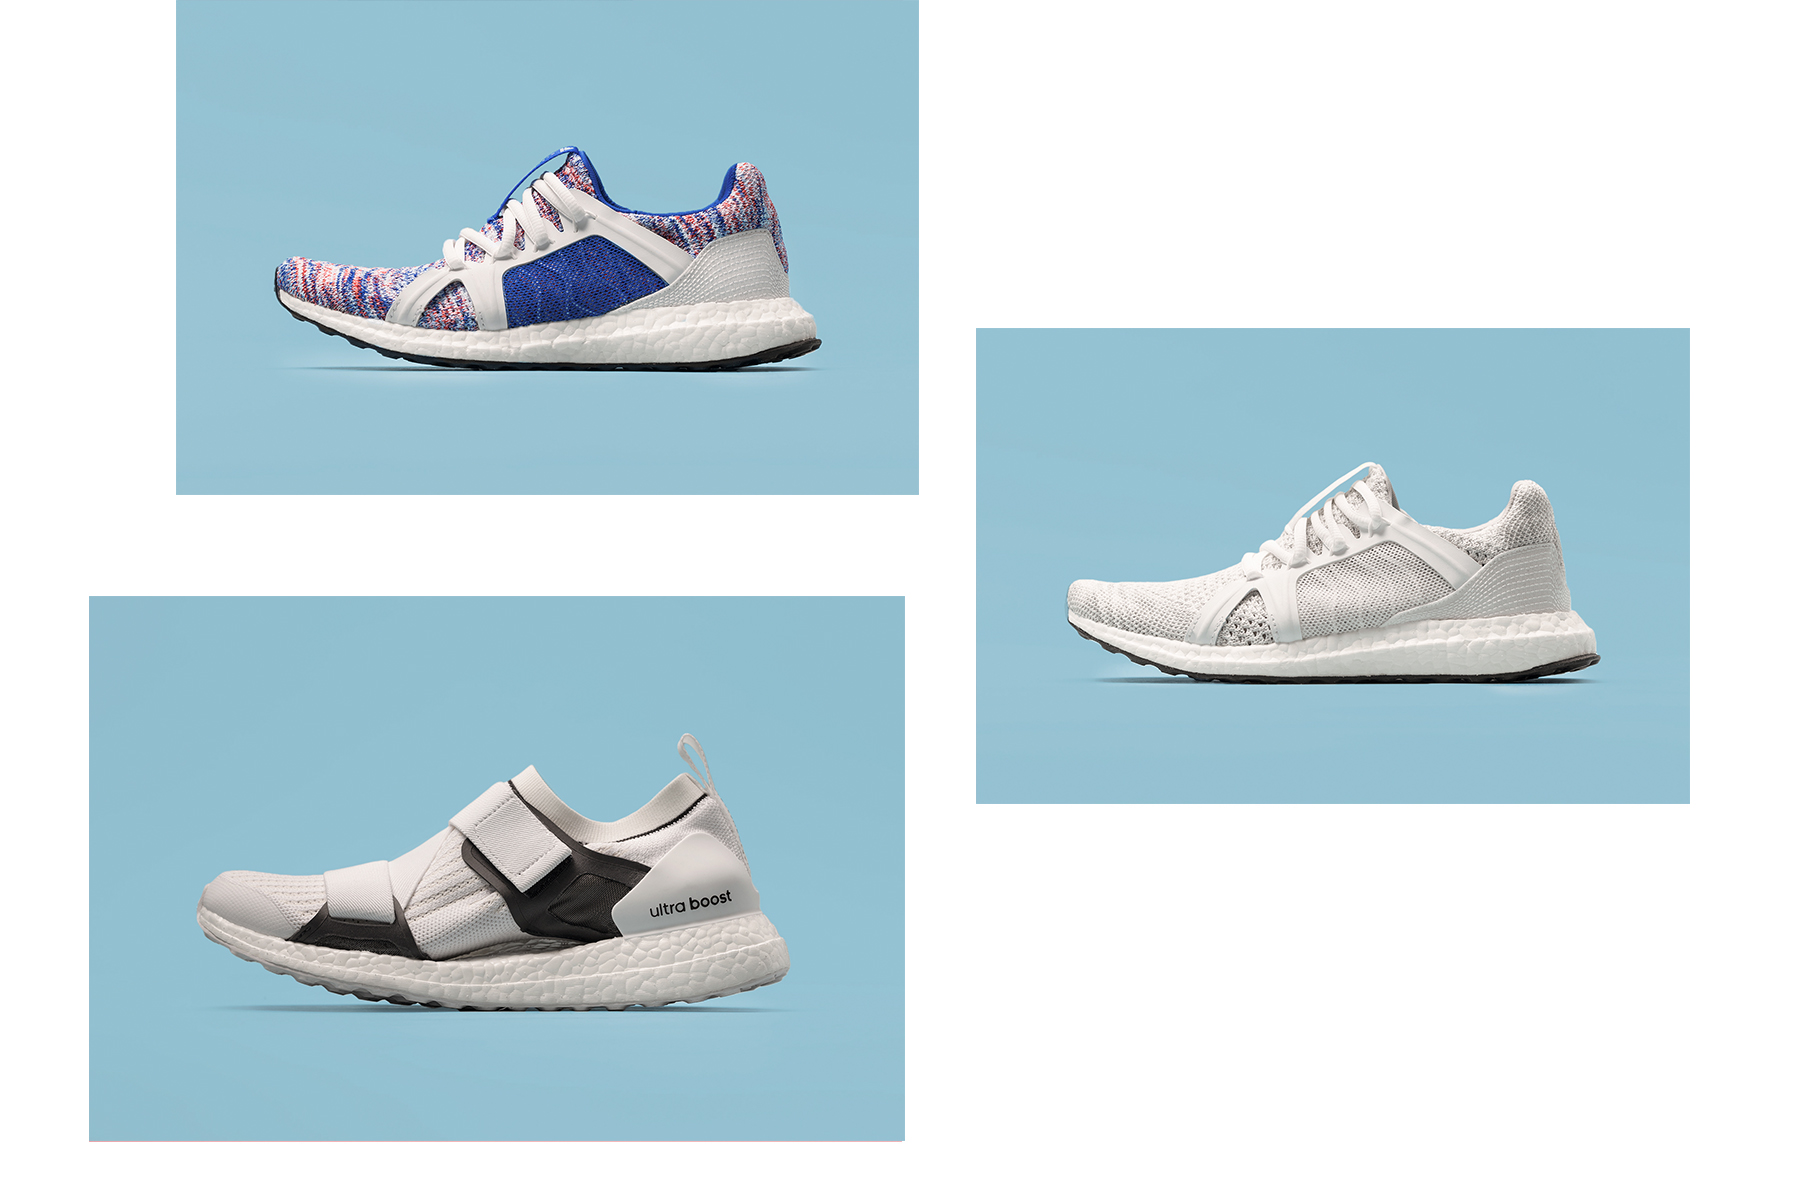 4c553e640f8 adidas by Stella McCartney Parley UltraBOOST X New Colorways Purple White  Grey Black Sustainable Footwear